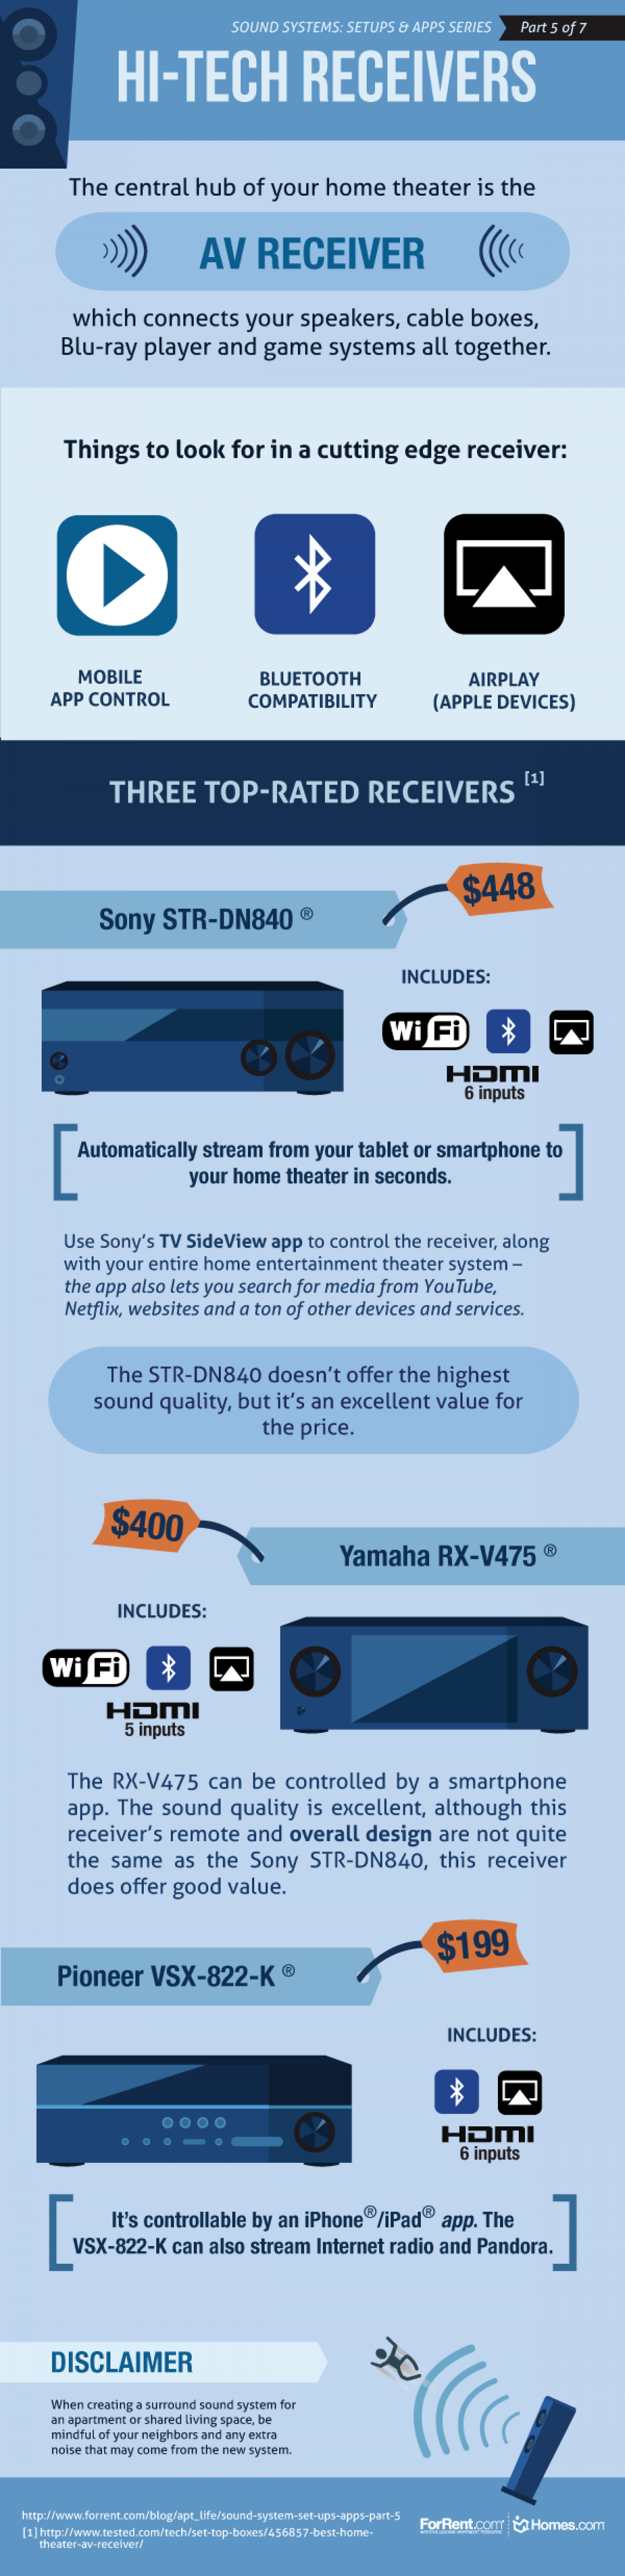 Sound System Set Ups & Apps – Part 5 Infographic